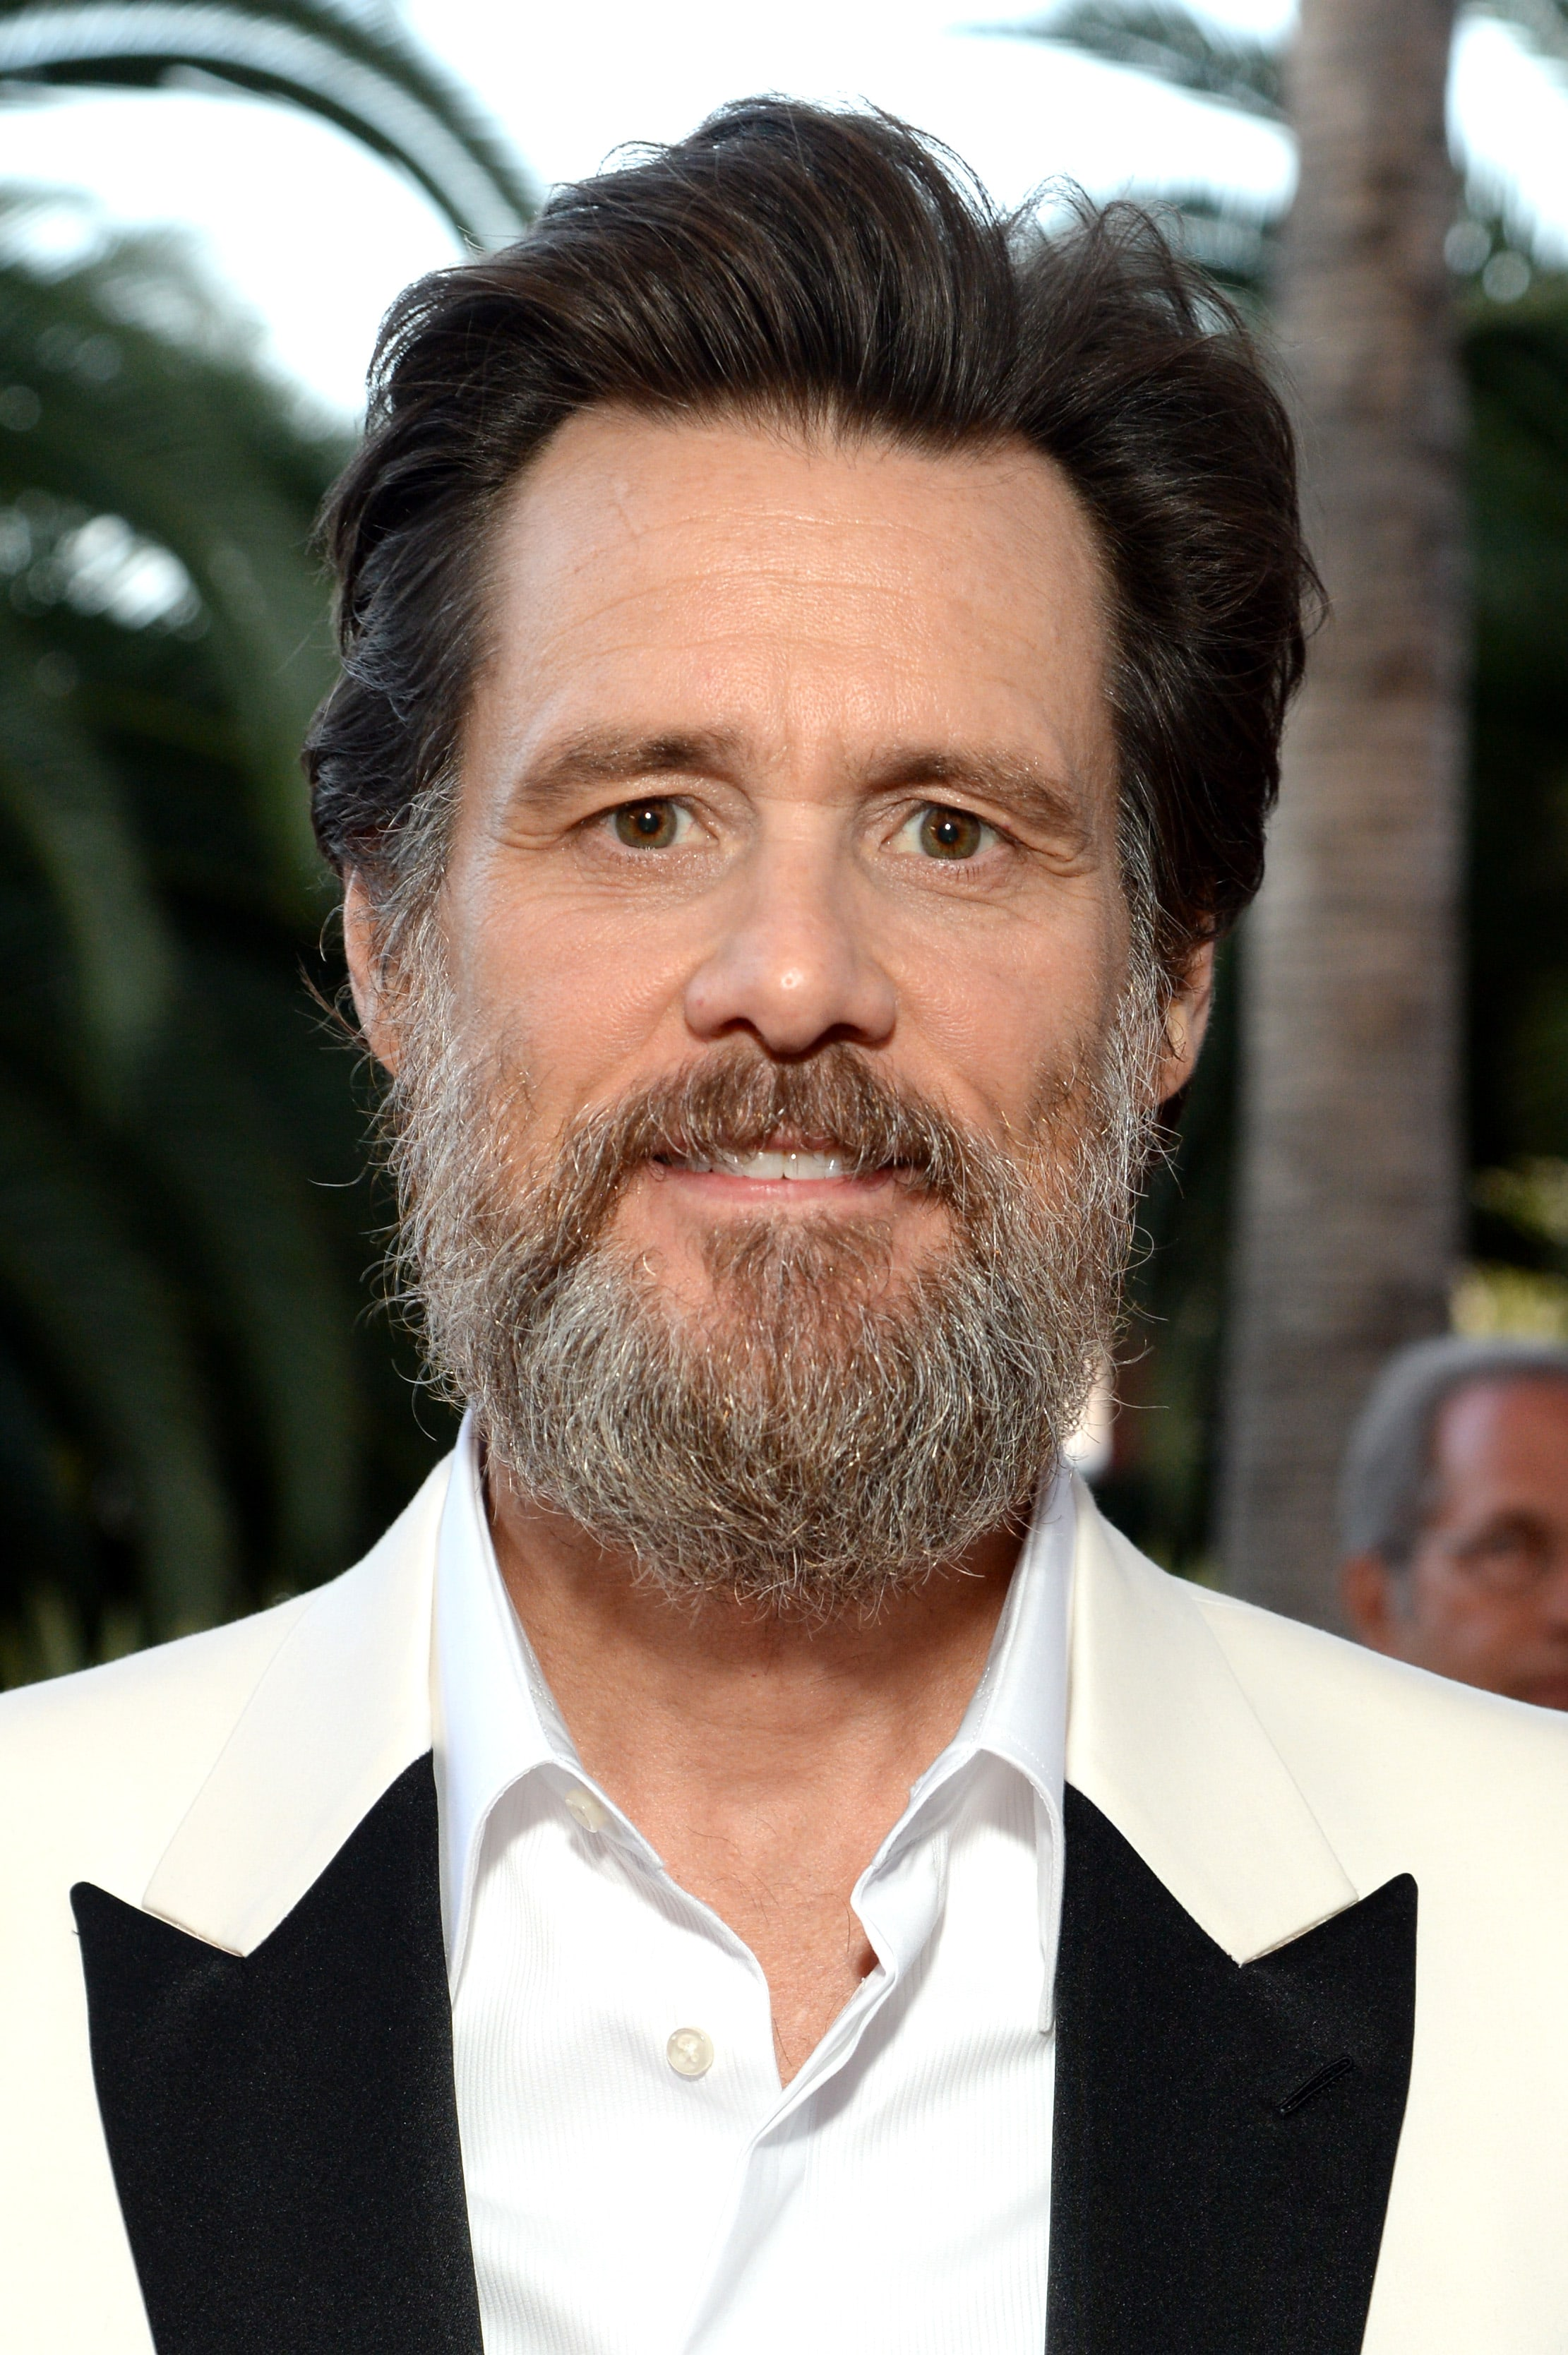 Jim Carrey For mobile